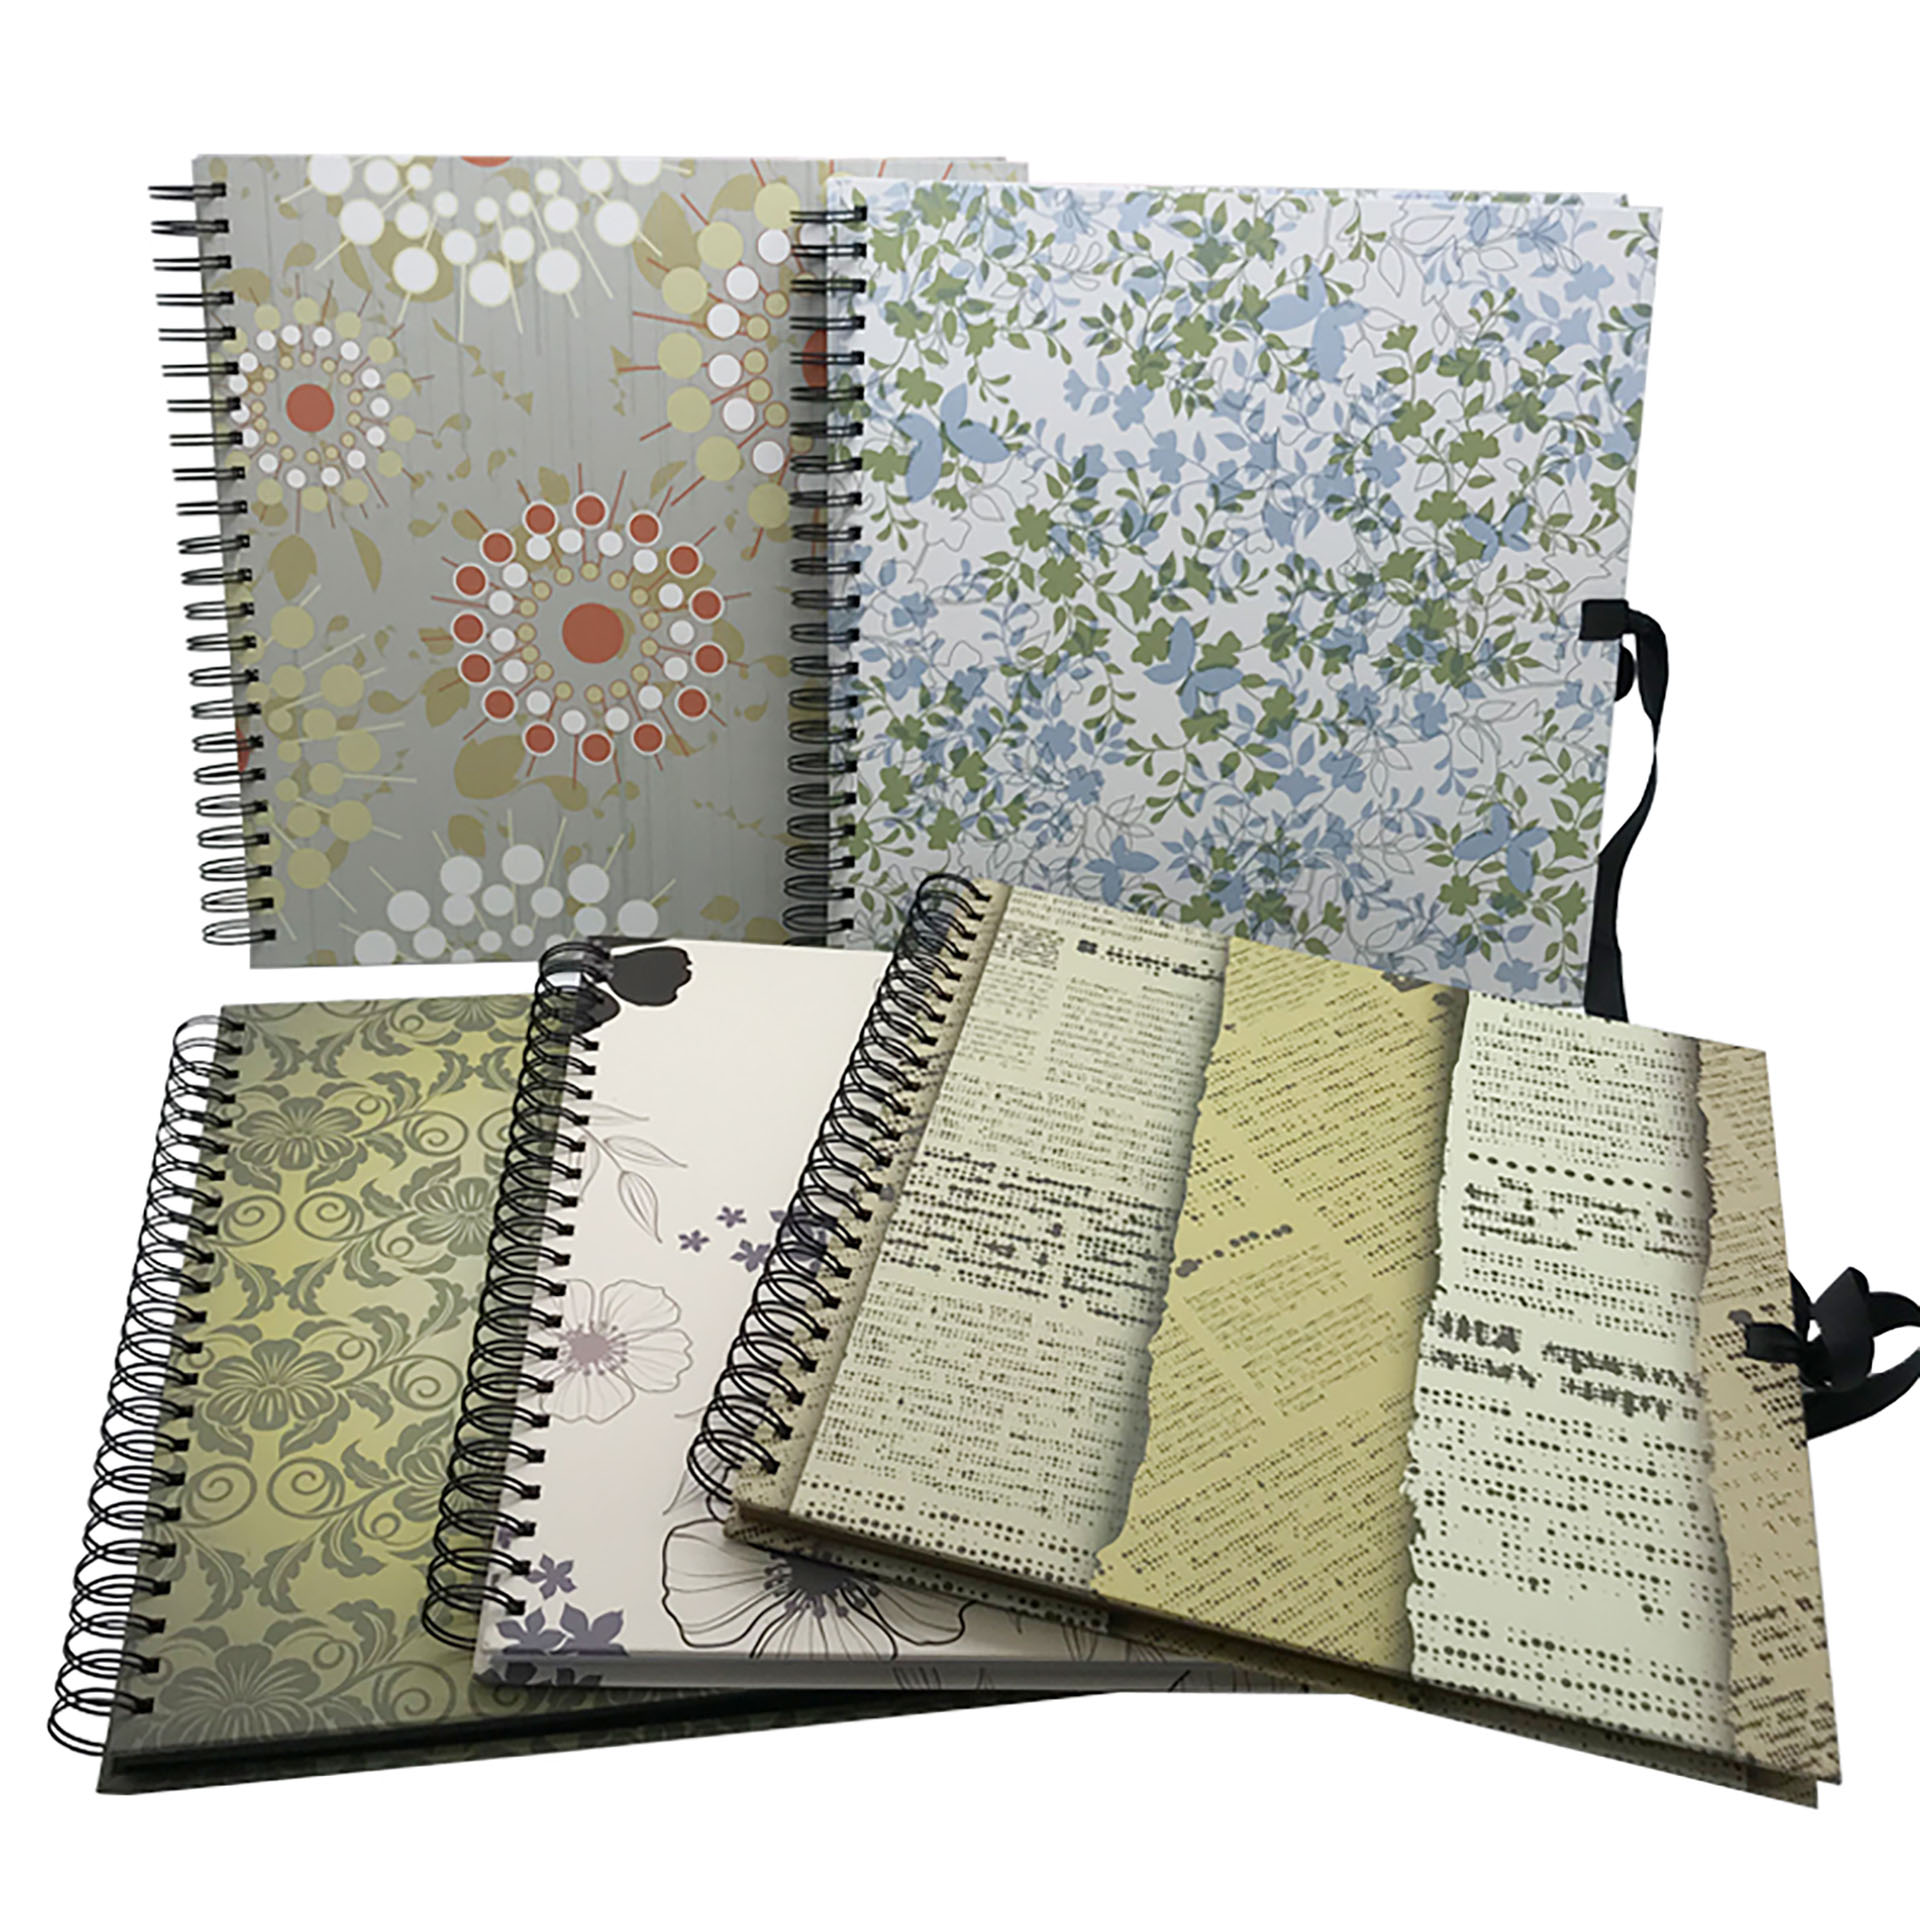 Scrapbook Albums in Printed Cover